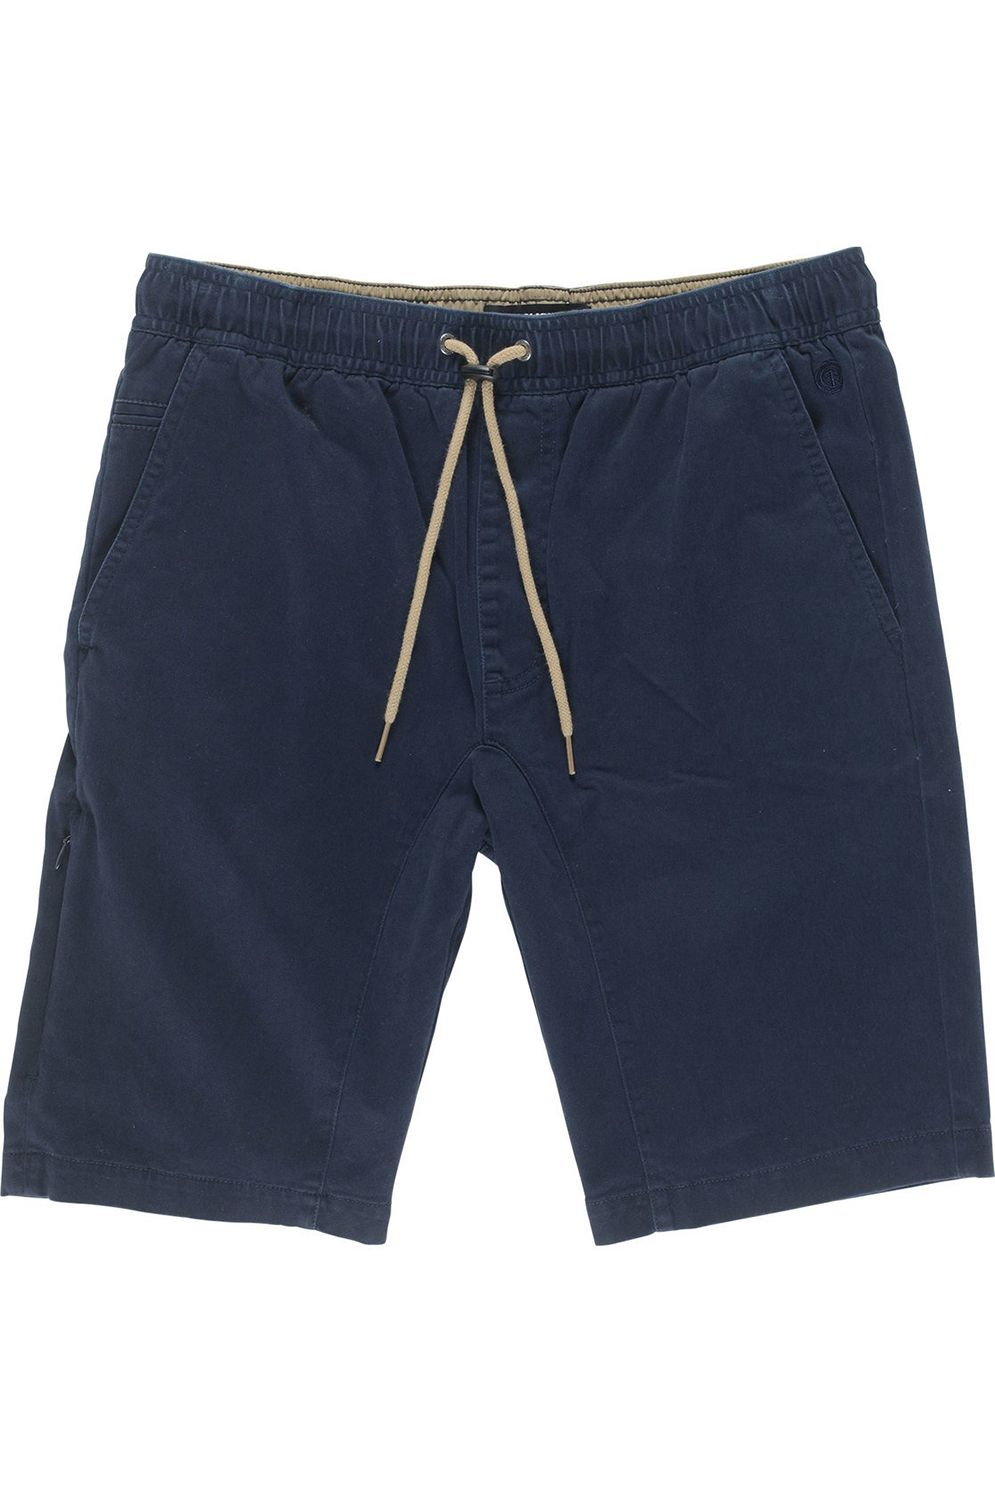 Walkshorts Element ALTONA SEASONAL COLLECTION Eclipse Navy